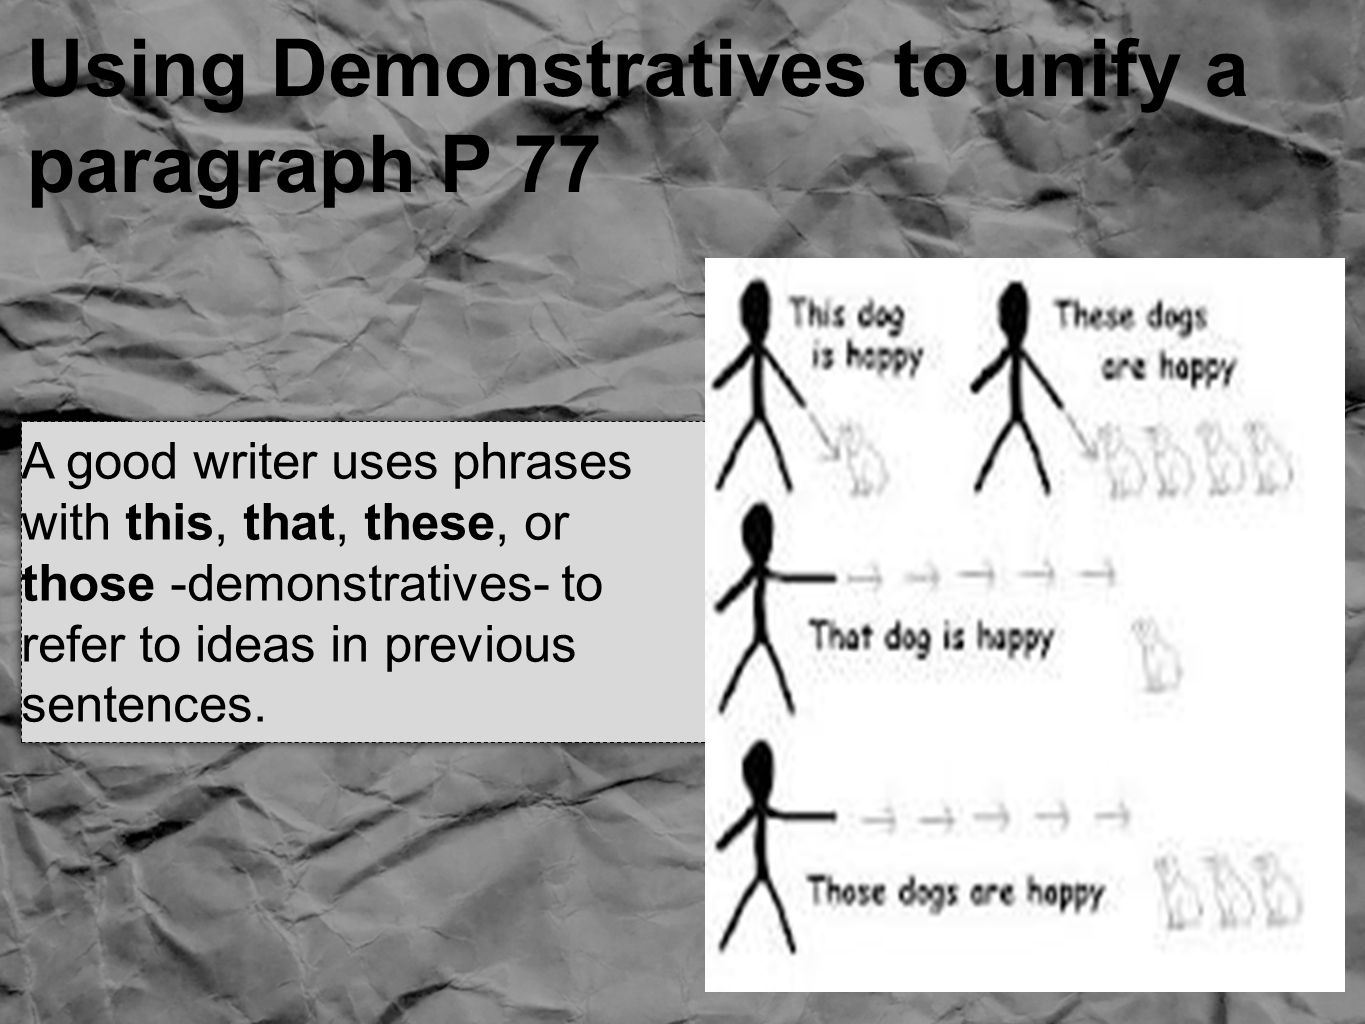 Using Demonstratives to unify a paragraph P 77 A good writer uses phrases with this, that, these, or those -demonstratives- to refer to ideas in previous sentences.